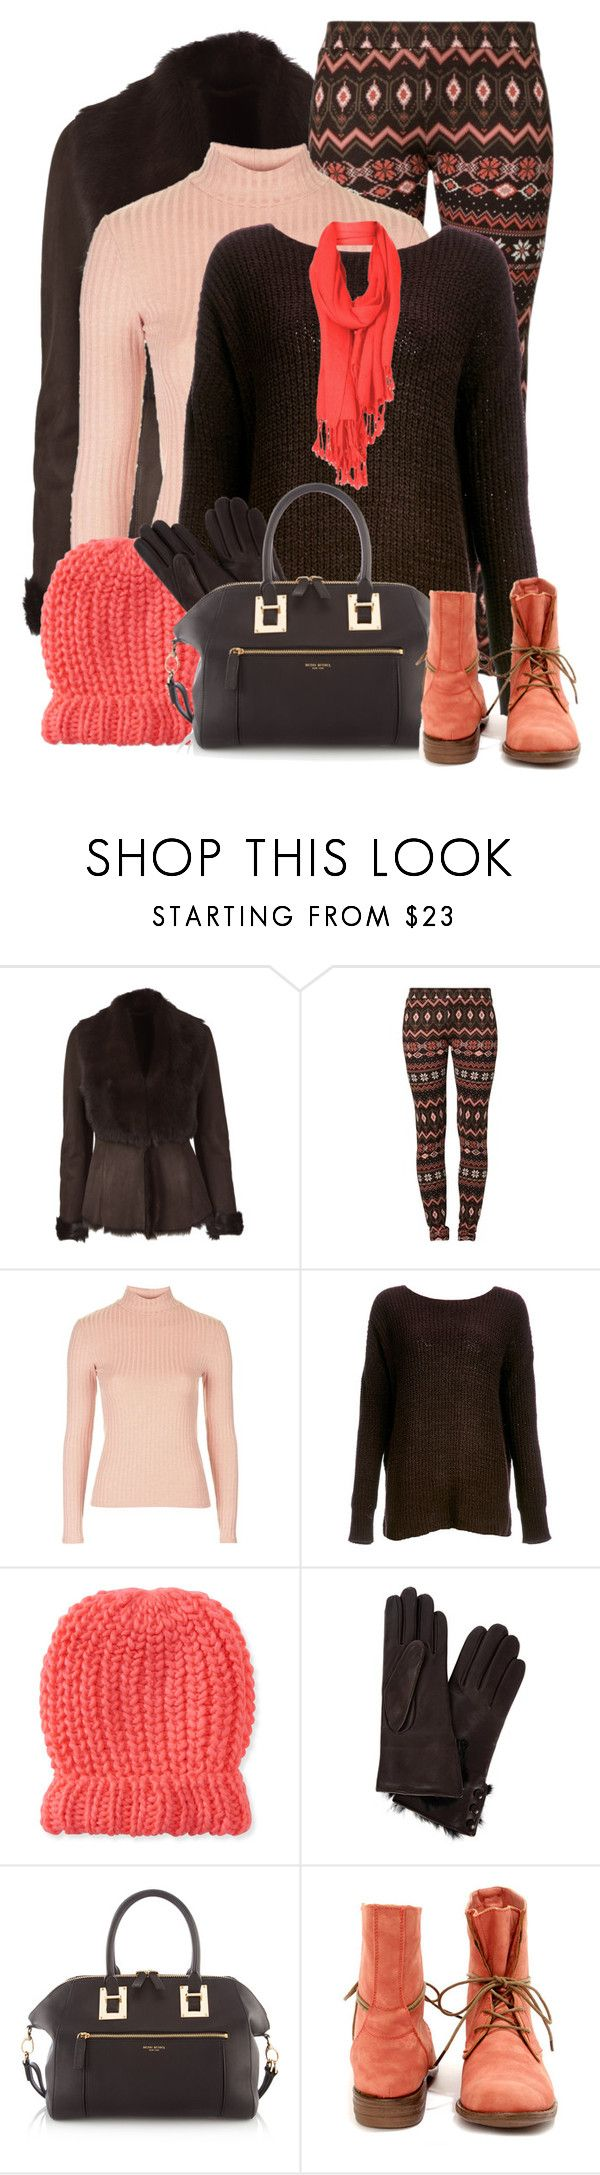 """Warm Layers"" by daiscat ❤ liked on Polyvore featuring L.K.Bennett, Evaw Wave, Topshop, BB Dakota, Aéropostale, Dents, Henri Bendel, women's clothing, women's fashion and women"